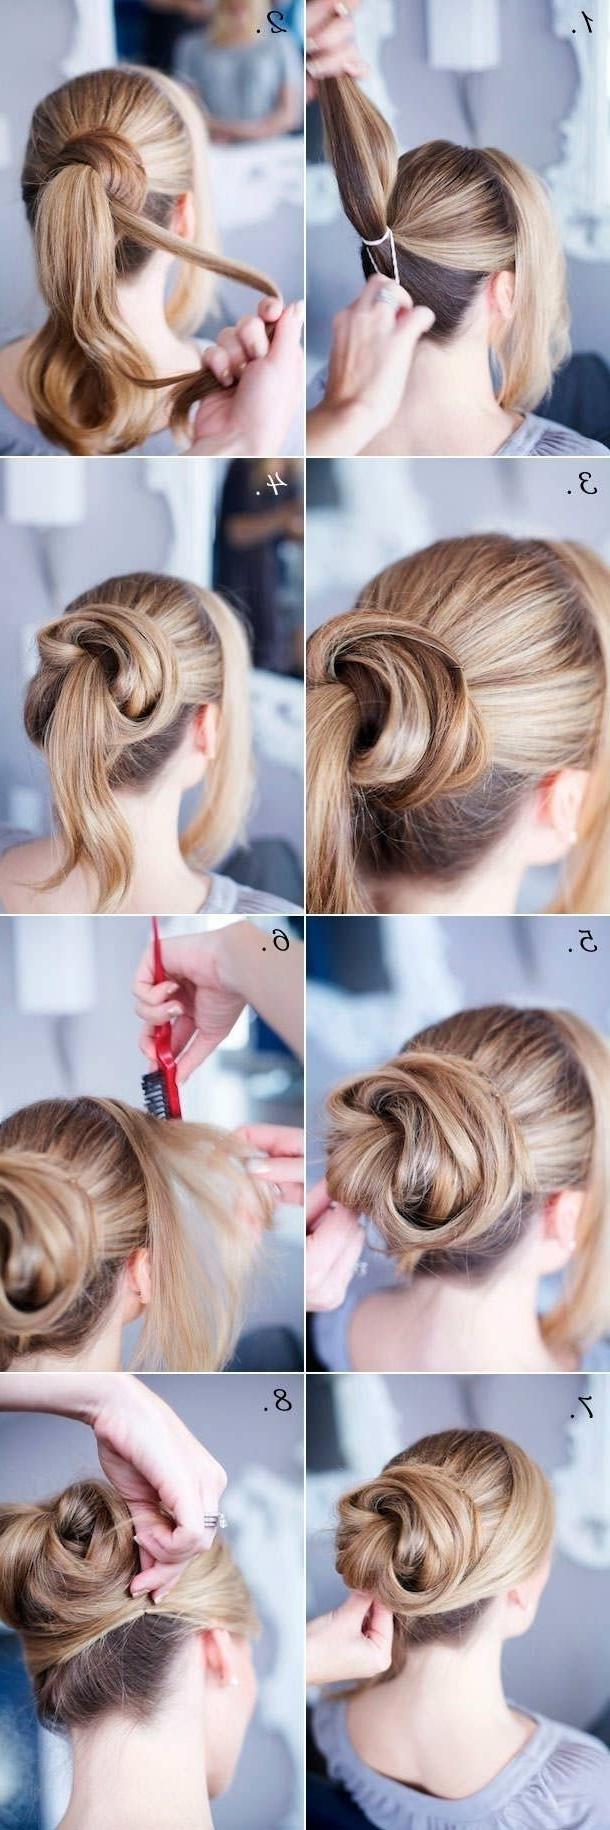 12 Trendy Low Bun Updo Hairstyles Tutorials: Easy Cute – Popular Regarding Quick Easy Updo Hairstyles For Long Hair (View 3 of 15)